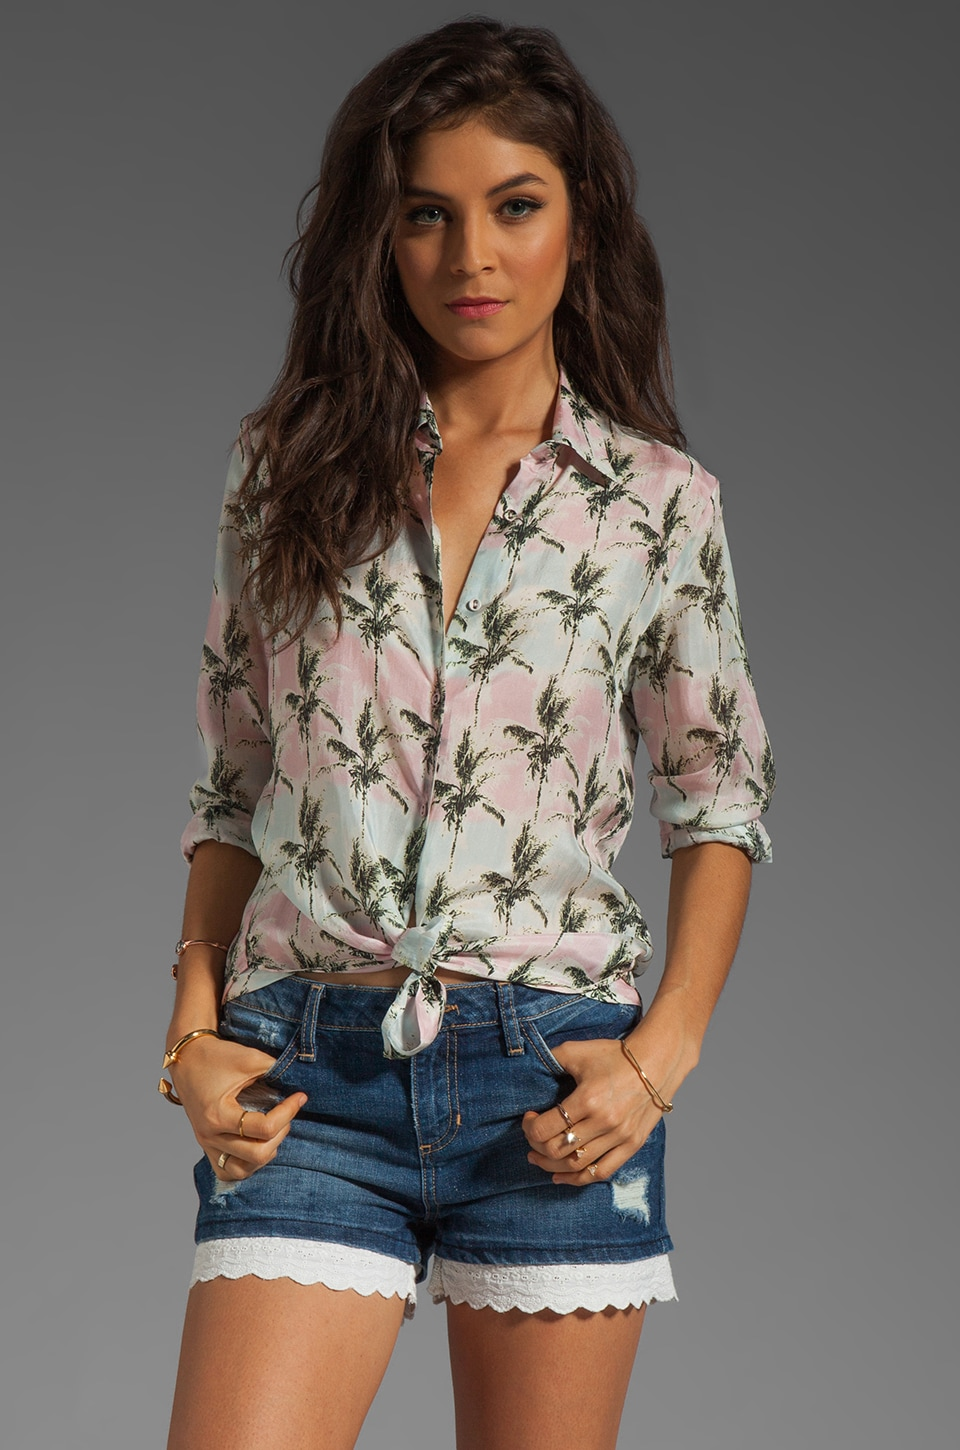 Capulet Long Sleeve Button Down in Pink Palm Tree Print